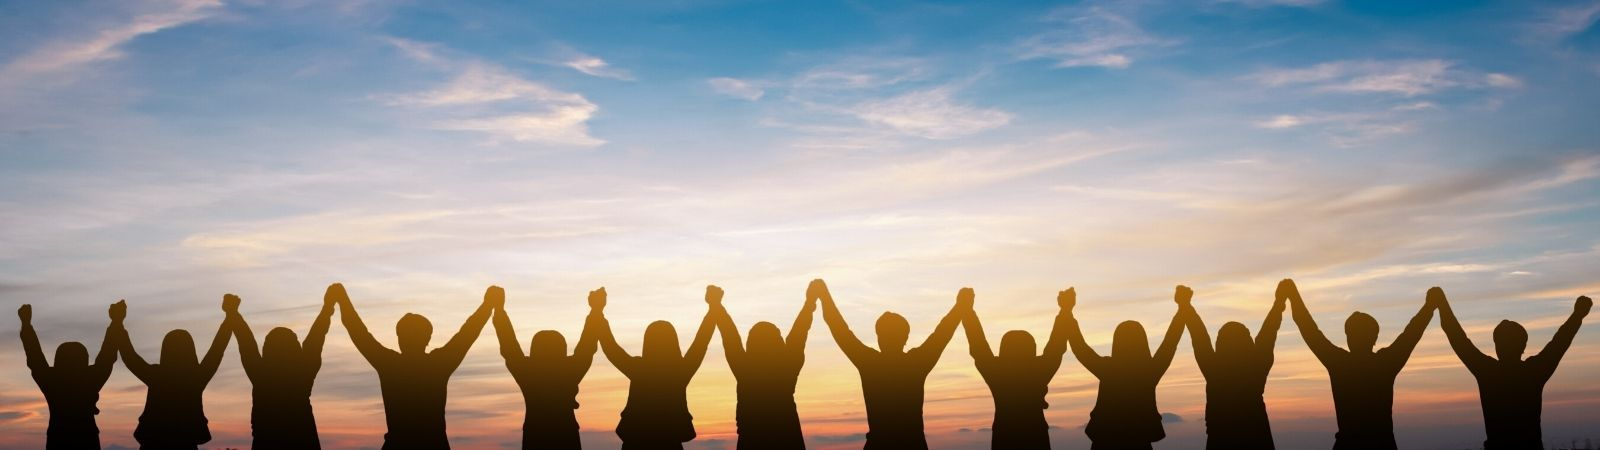 Professionals holding hands above heads in a triumphant, collaborative way facing a beautiful sunset to symbolize ethical, successful business practices.